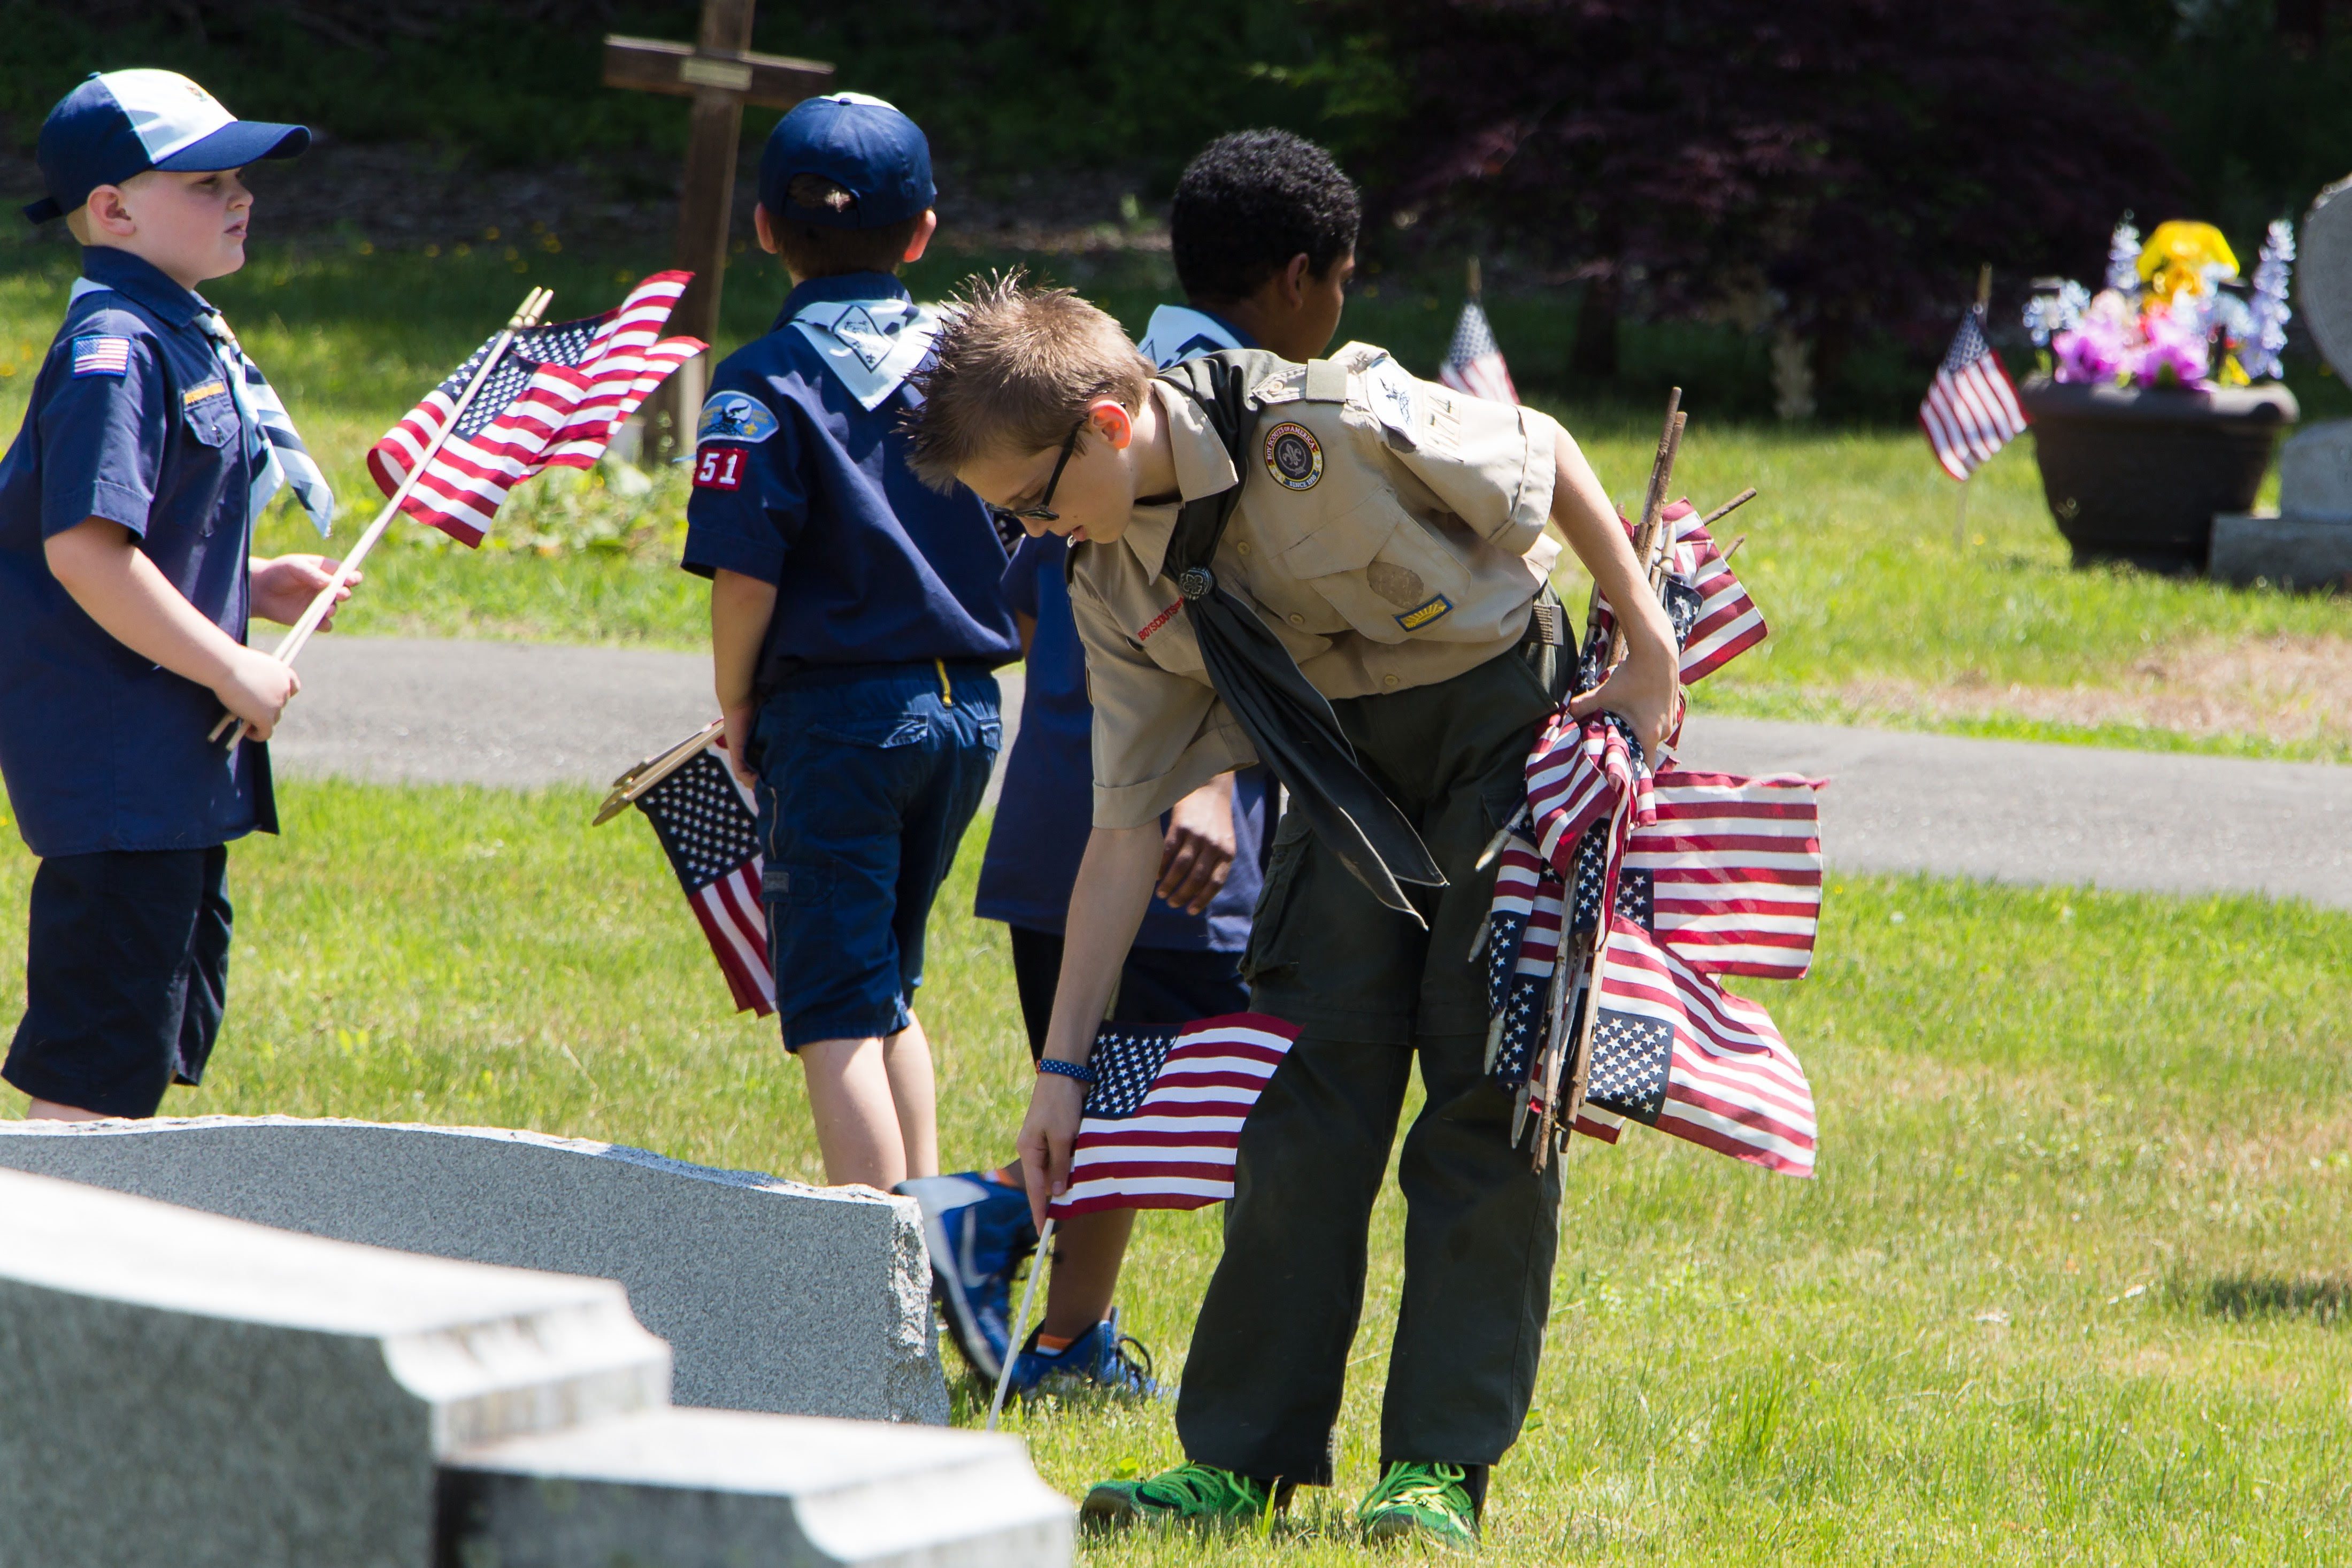 d601f9037aa424c9f1aa_20160528_Boy_Scouts_Memorial_Day_Flag_Settng_087.jpg